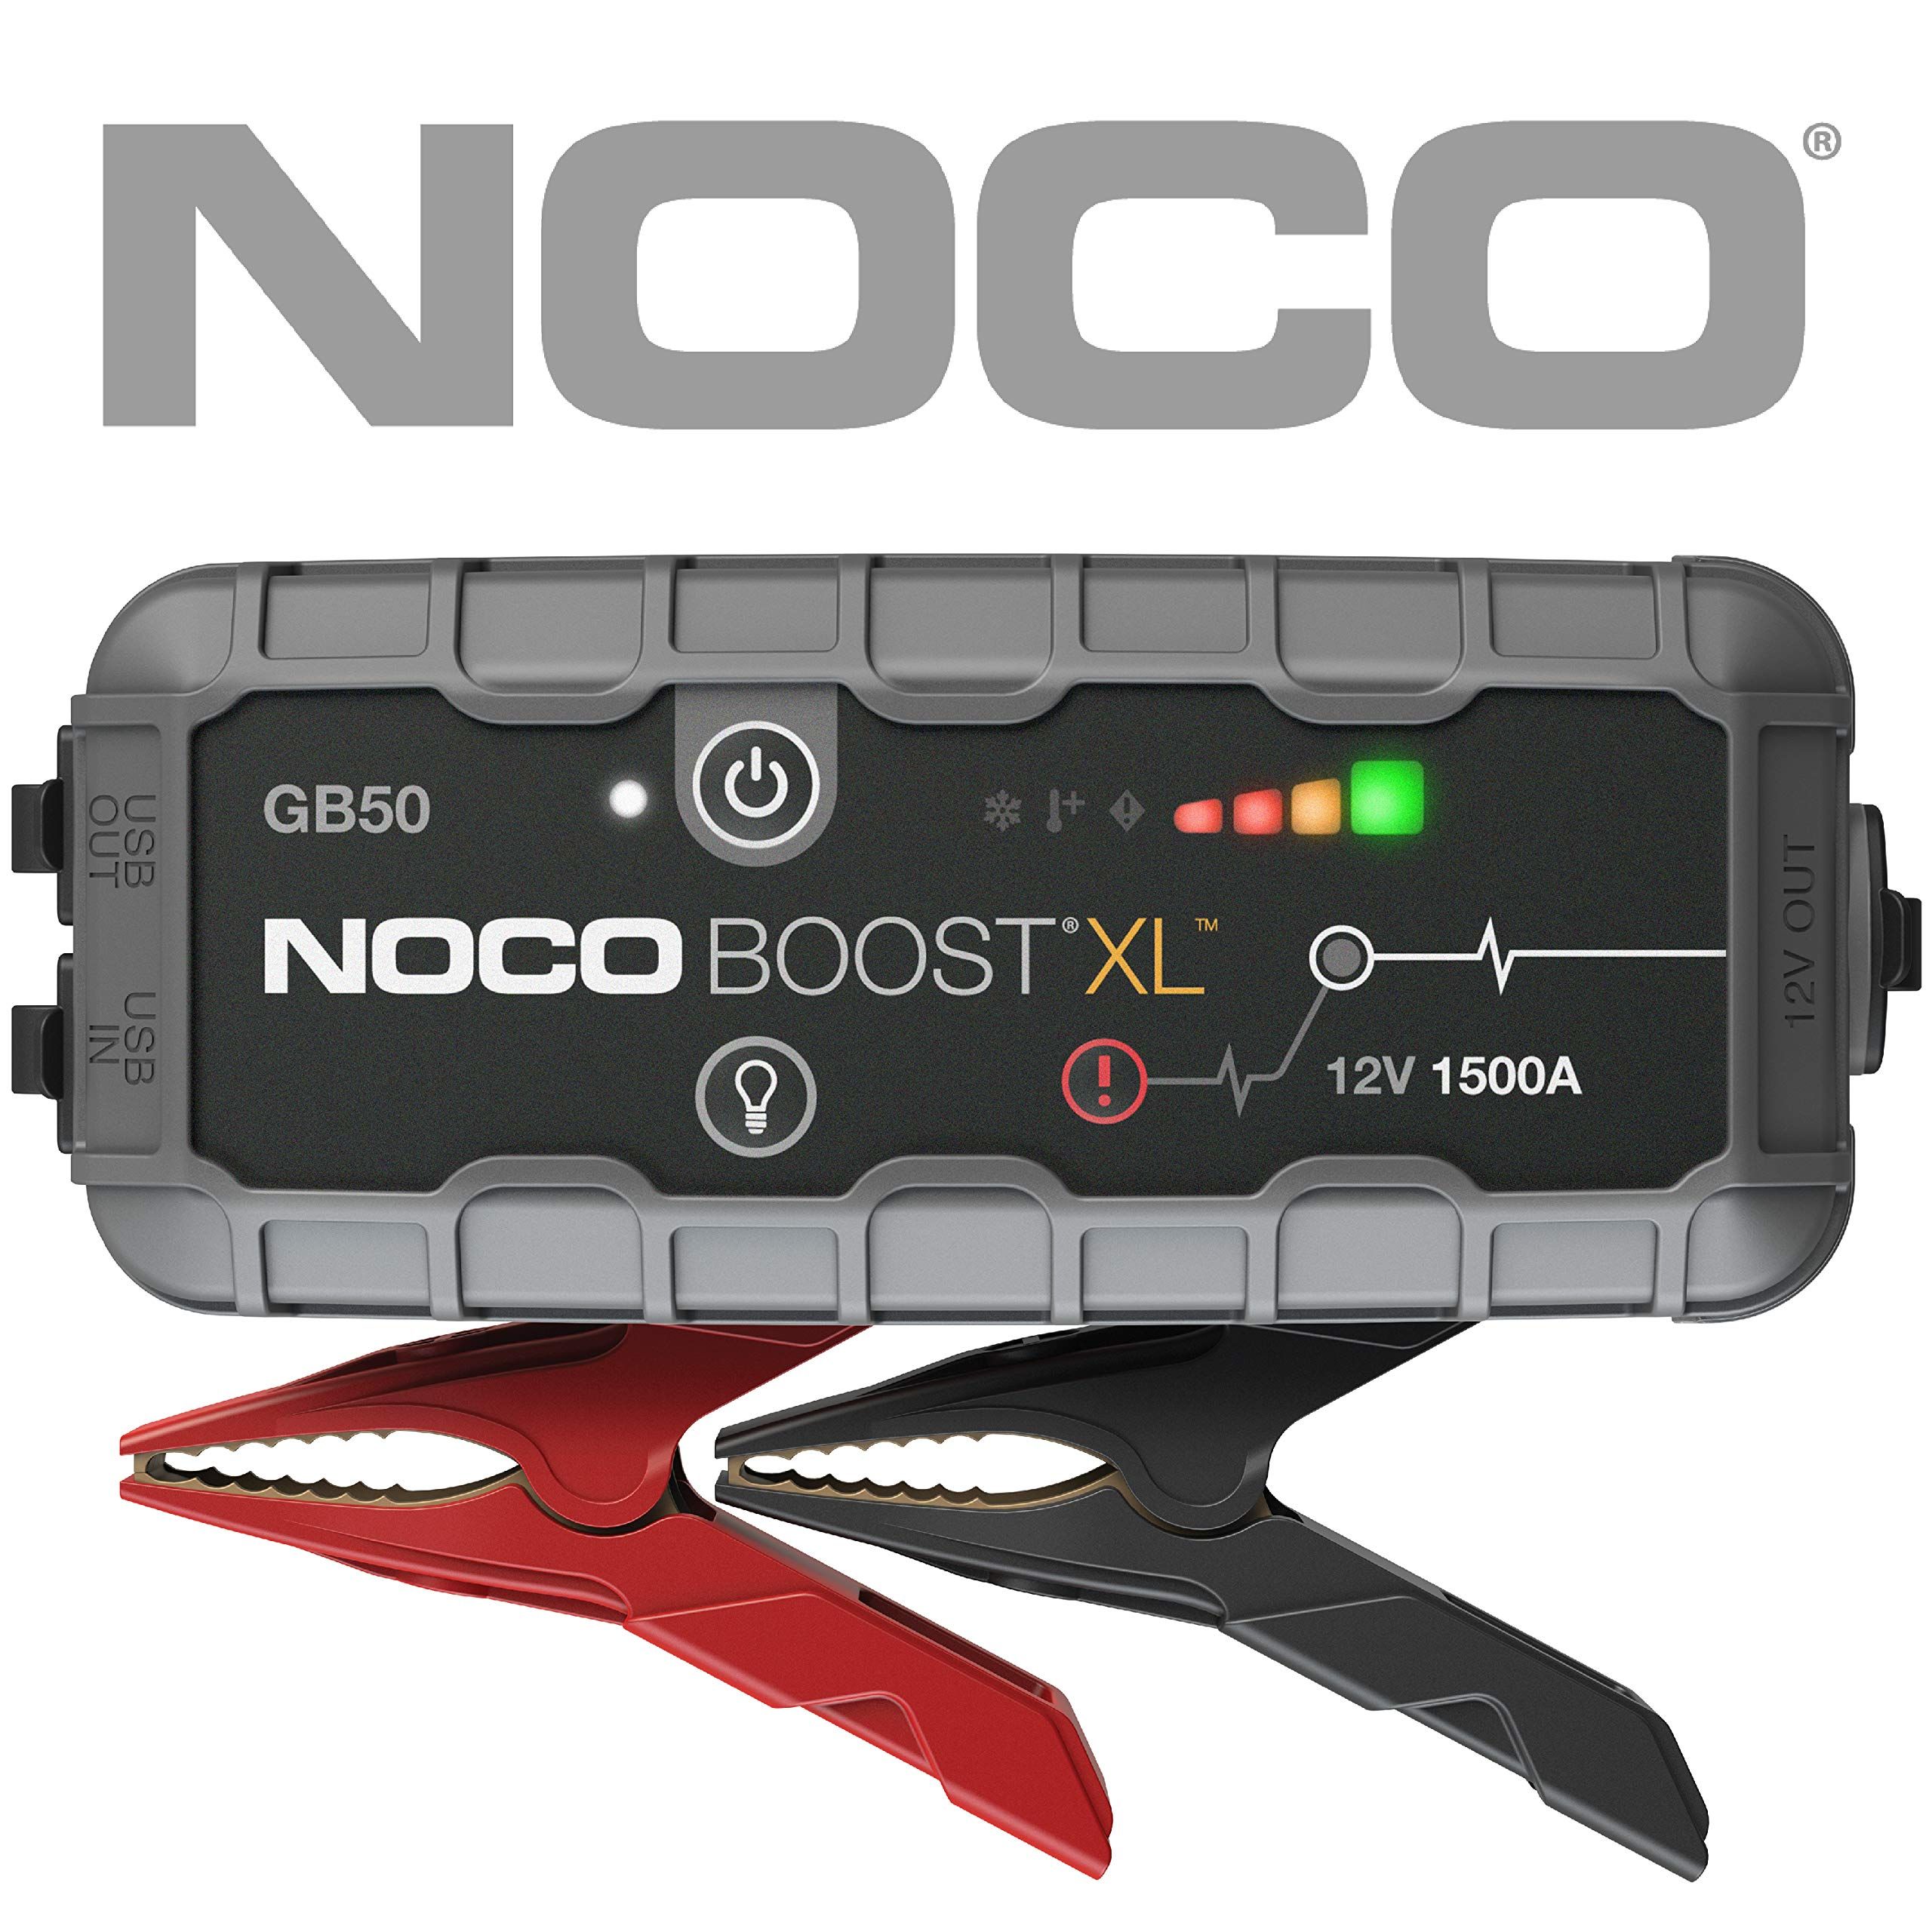 NOCO Boost XL GB50 1500 Amp 12V UltraSafe Lithium Jump Starter for up to 7L Gasoline and 4.5L Diesel Engines by NOCO